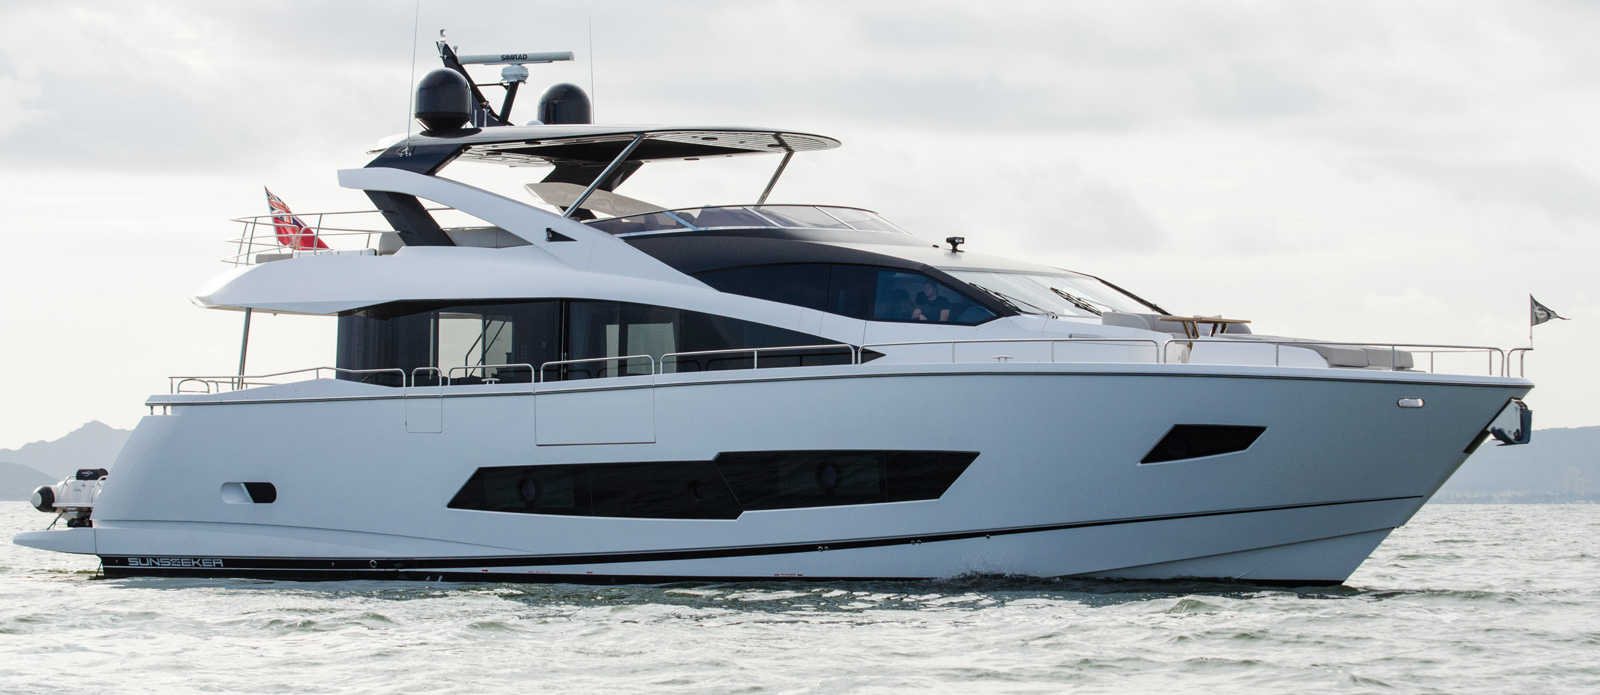 Sunseeker 86 Yacht - Providence - For Sale with Bristow-Holmes